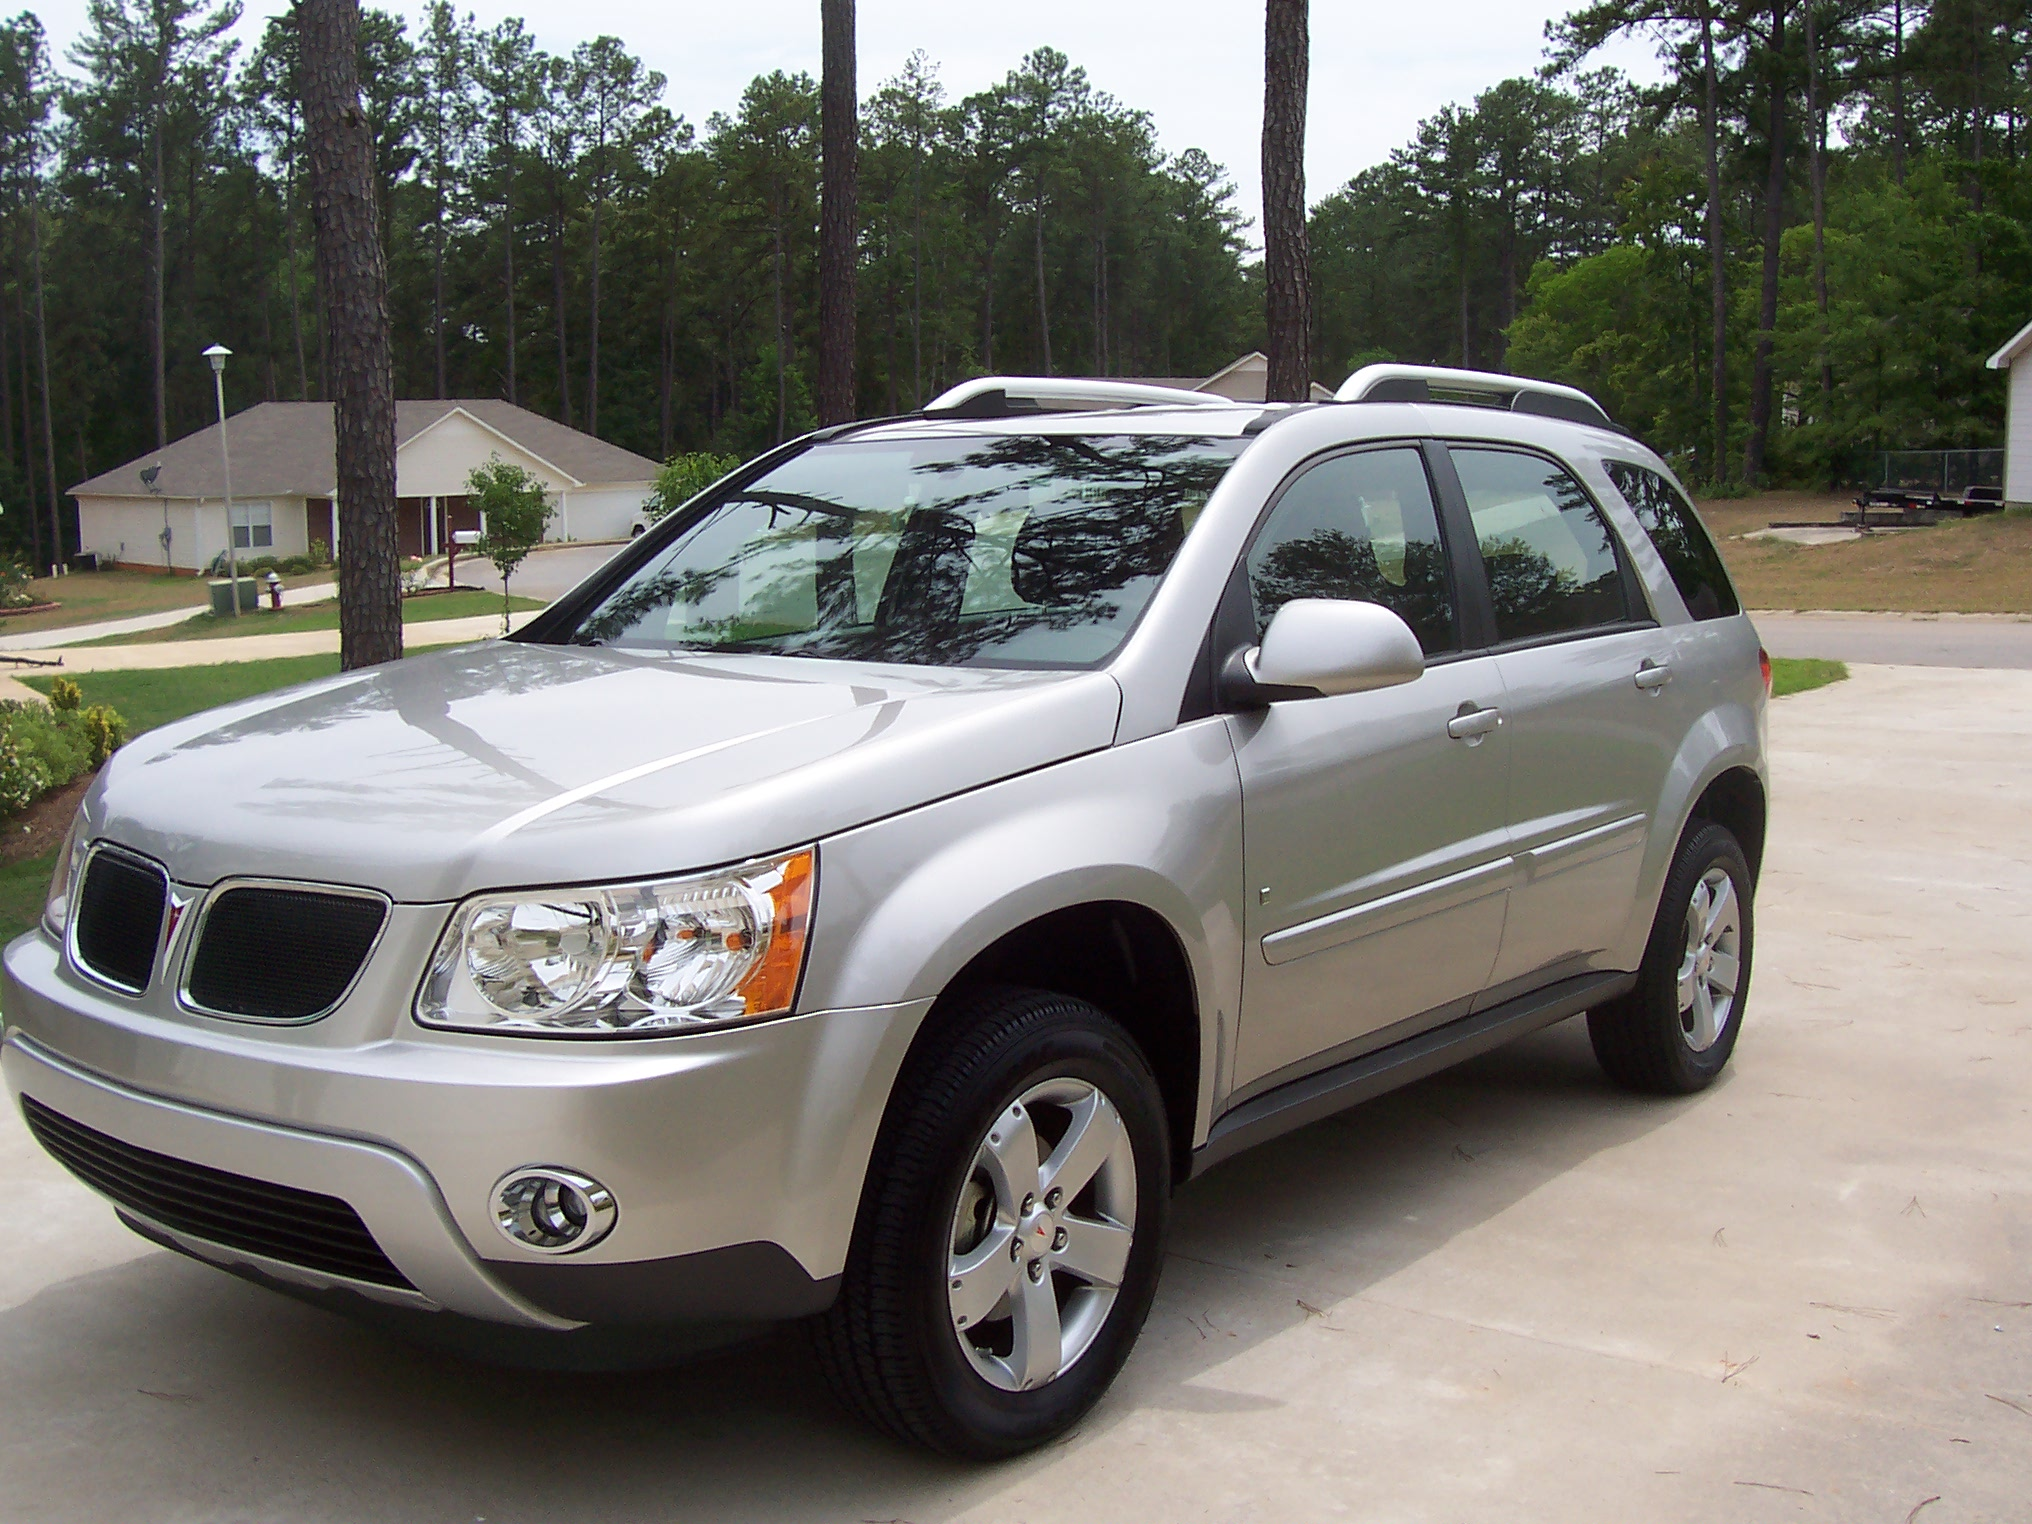 Pontiac Torrent #8